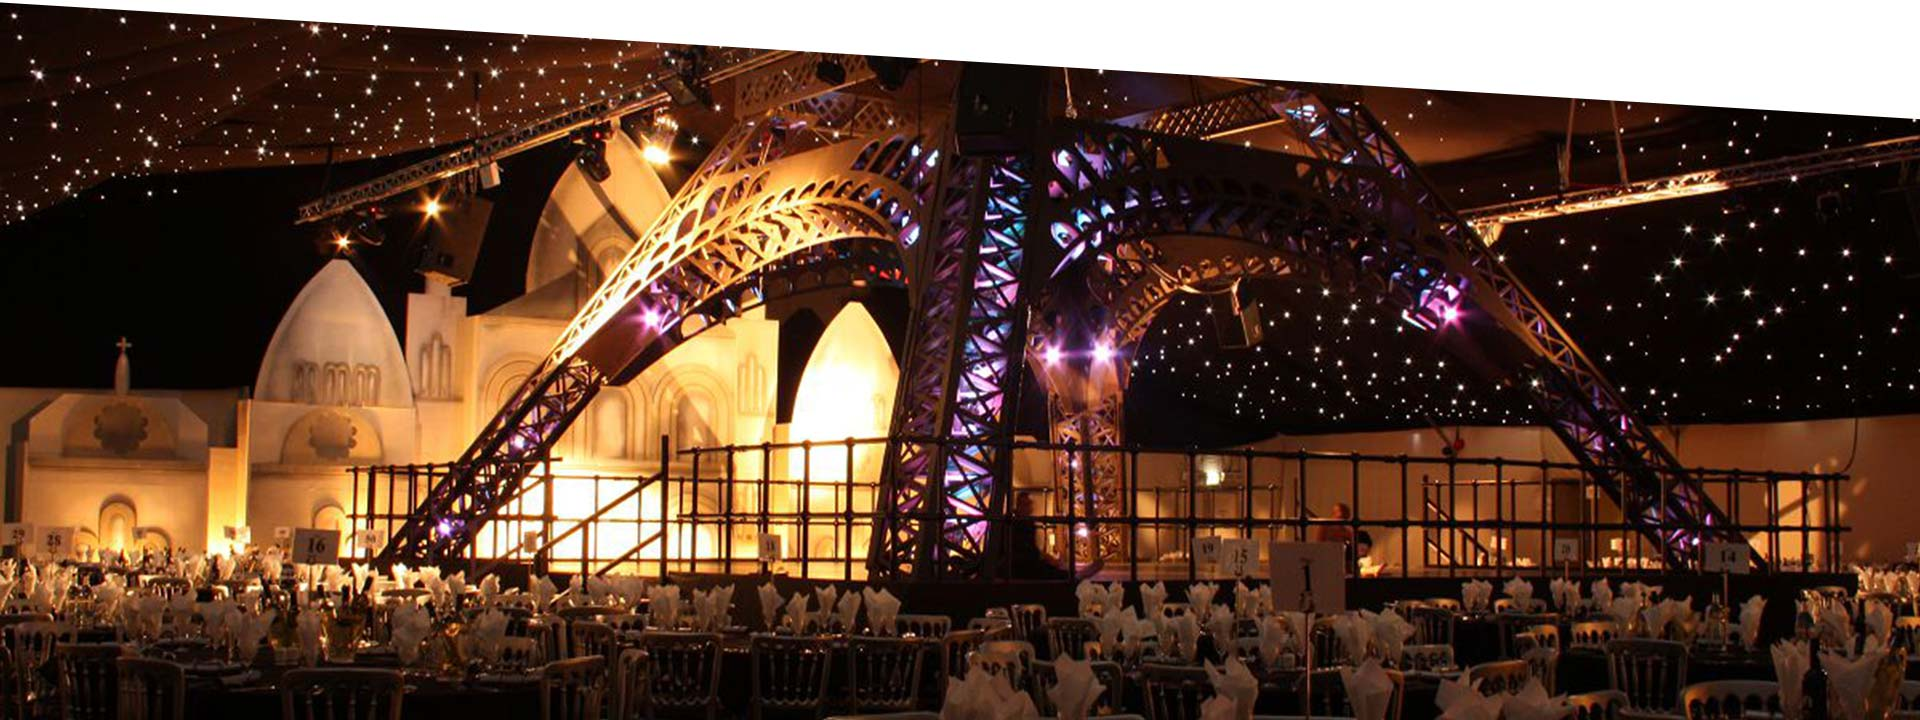 Christmas Party Ideas Newcastle Part - 49: Paris Theme Christmas Party